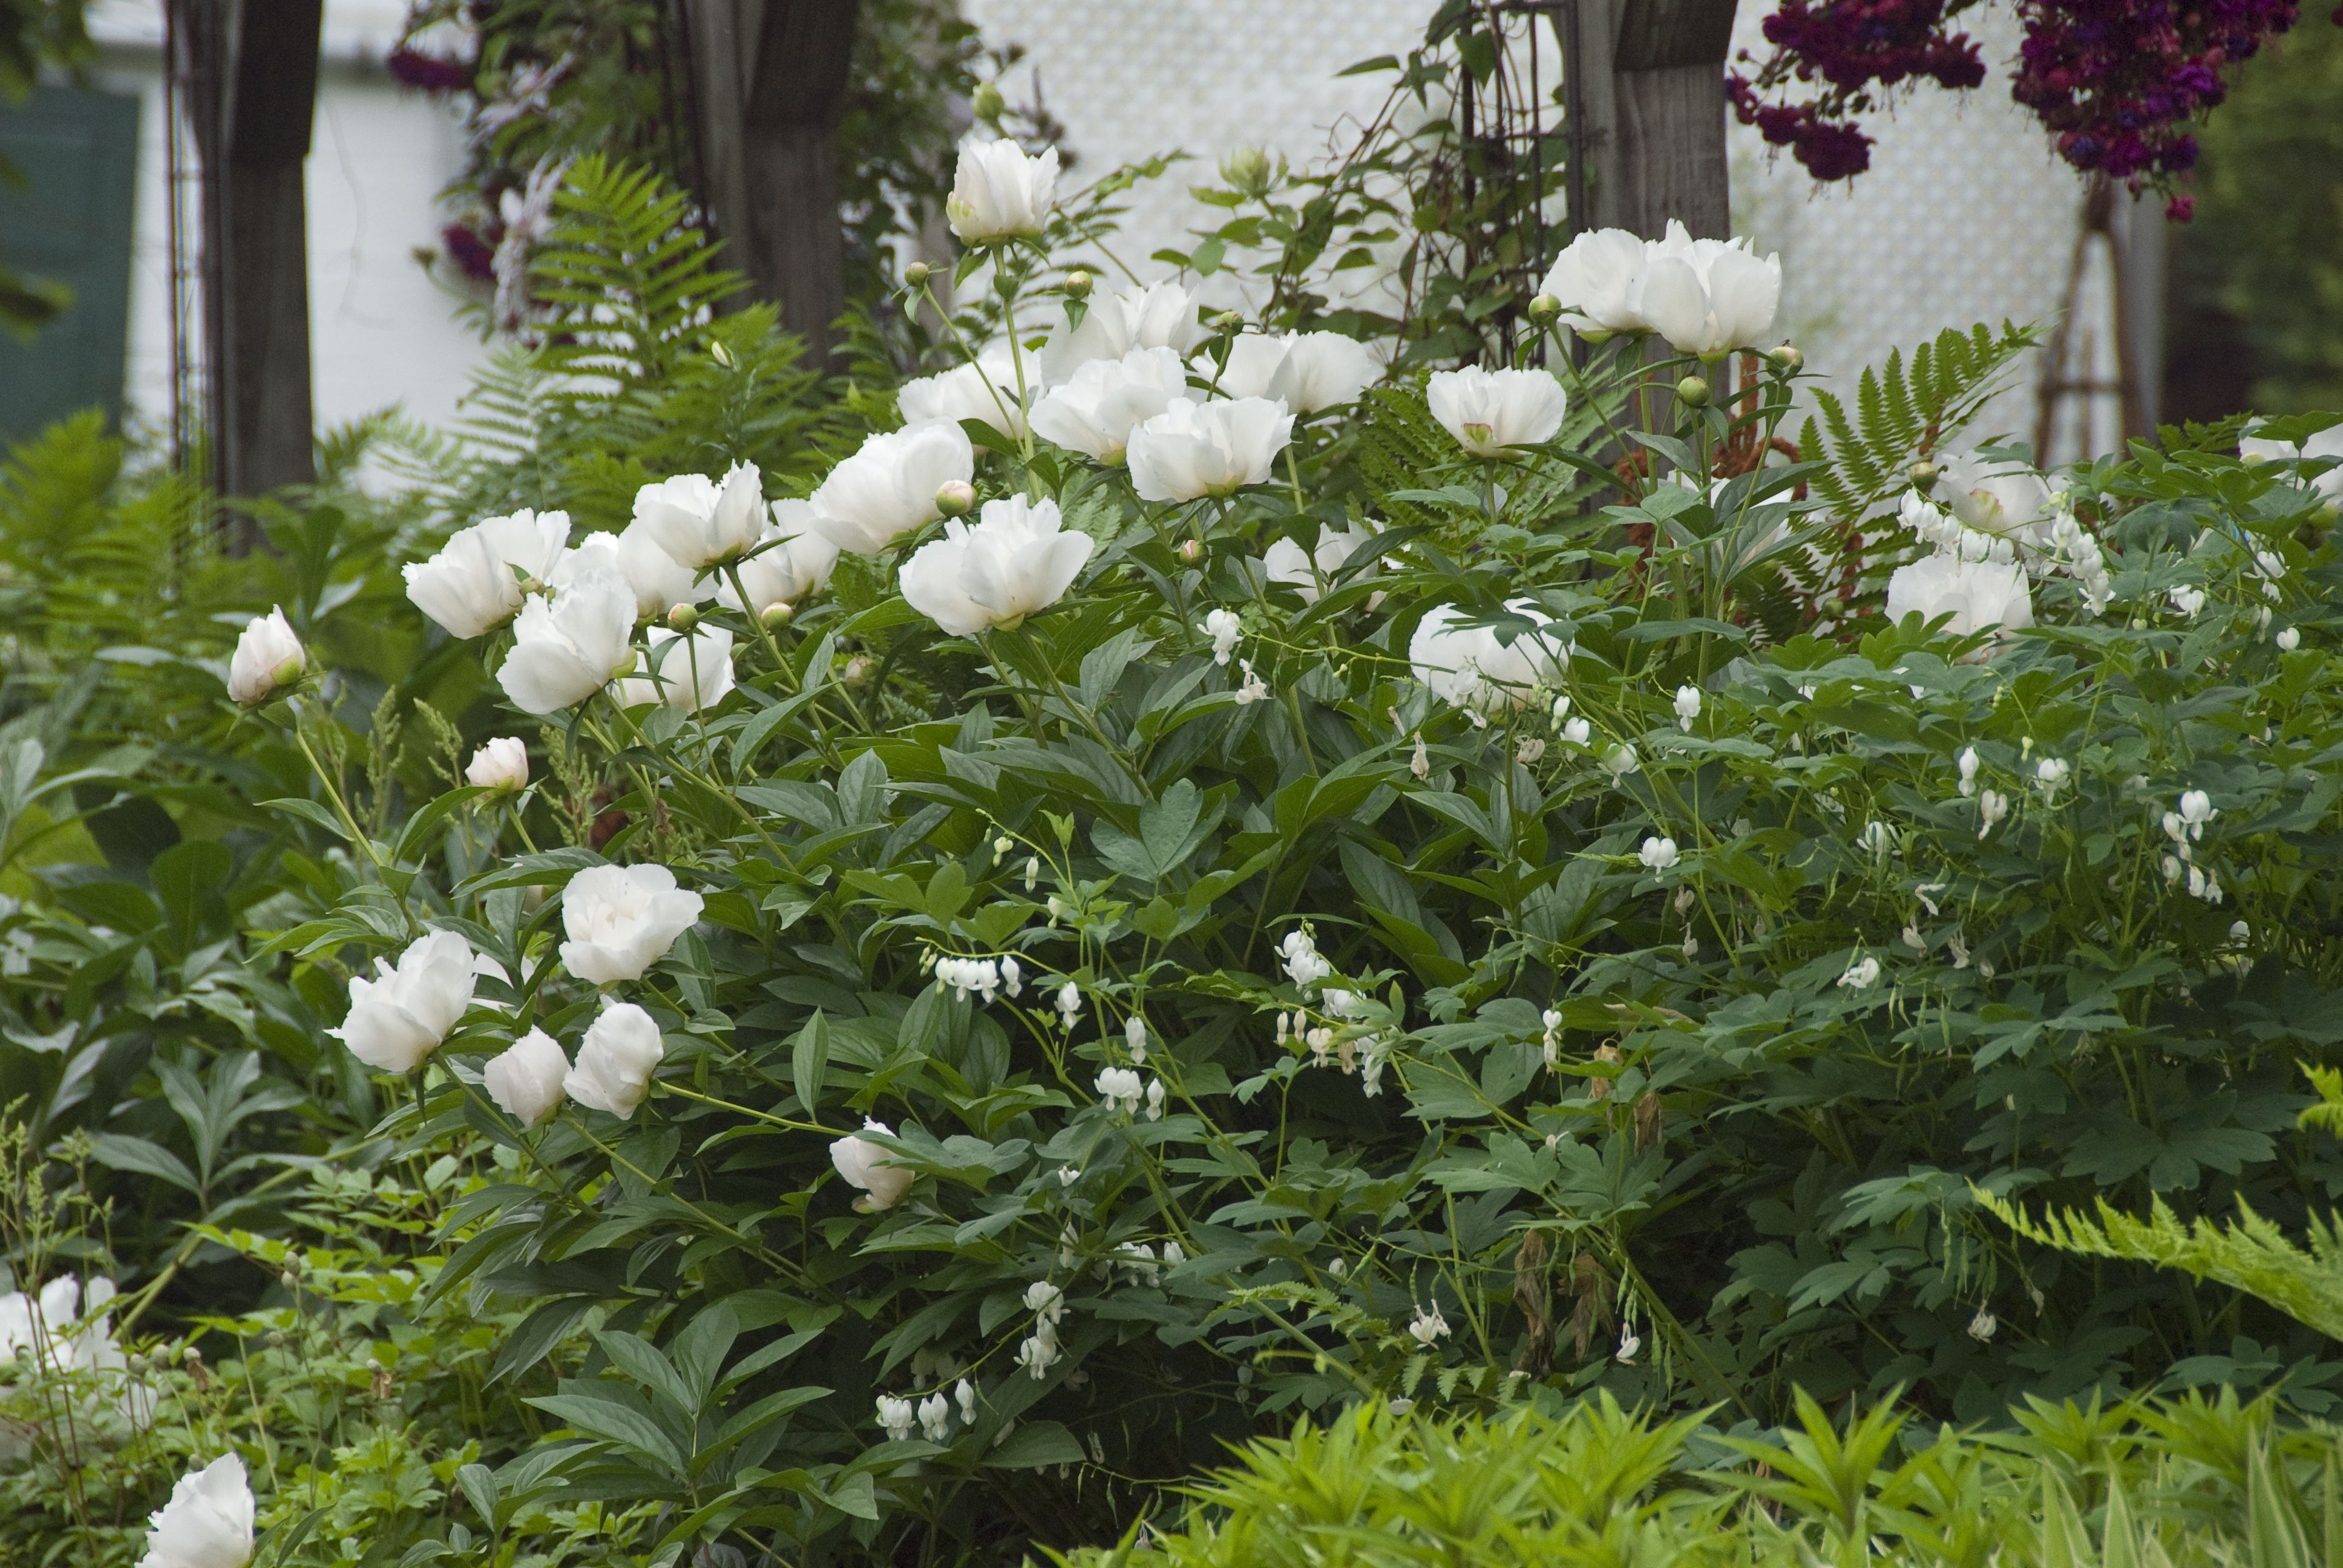 White Peony And White Dicentra Spectabilis In Bloom At White Flower